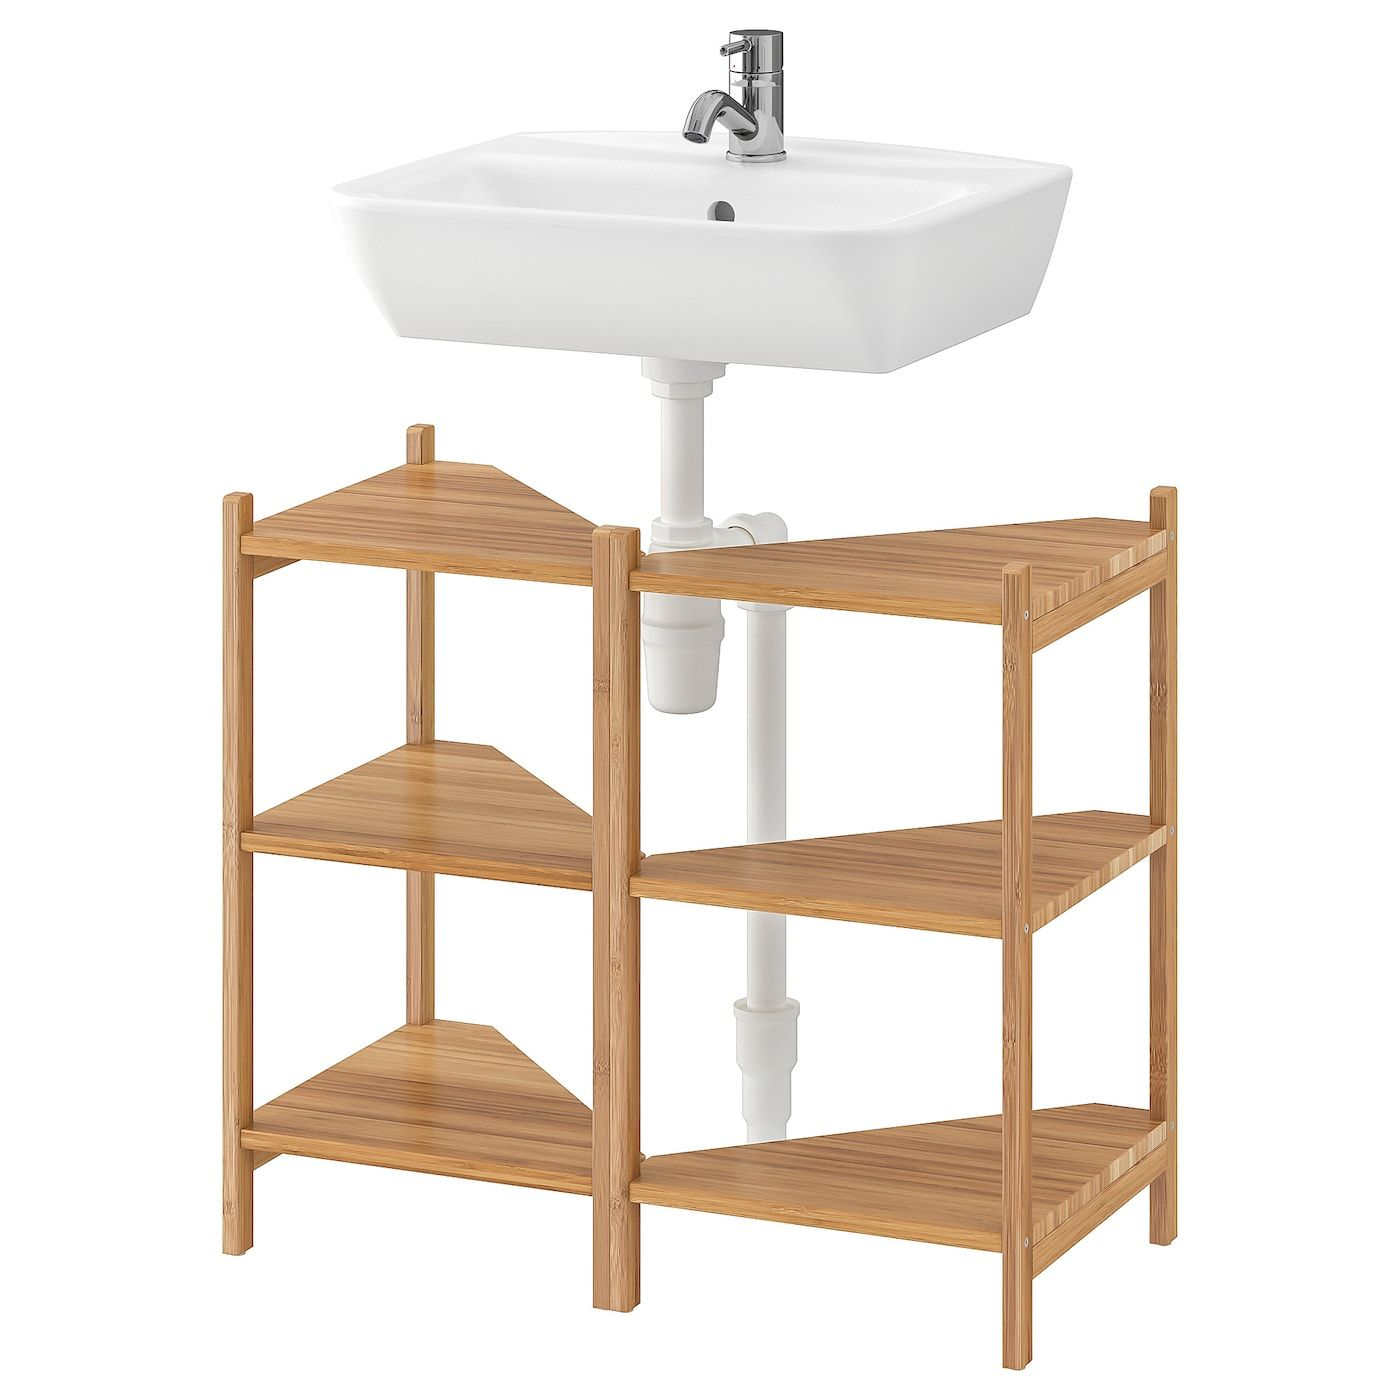 Ragrund Tyngen Sink Shelf Corner Shelf Bamboo Pilkan Faucet Ikea In 2020 Sink Shelf Ikea Corner Shelf Ikea